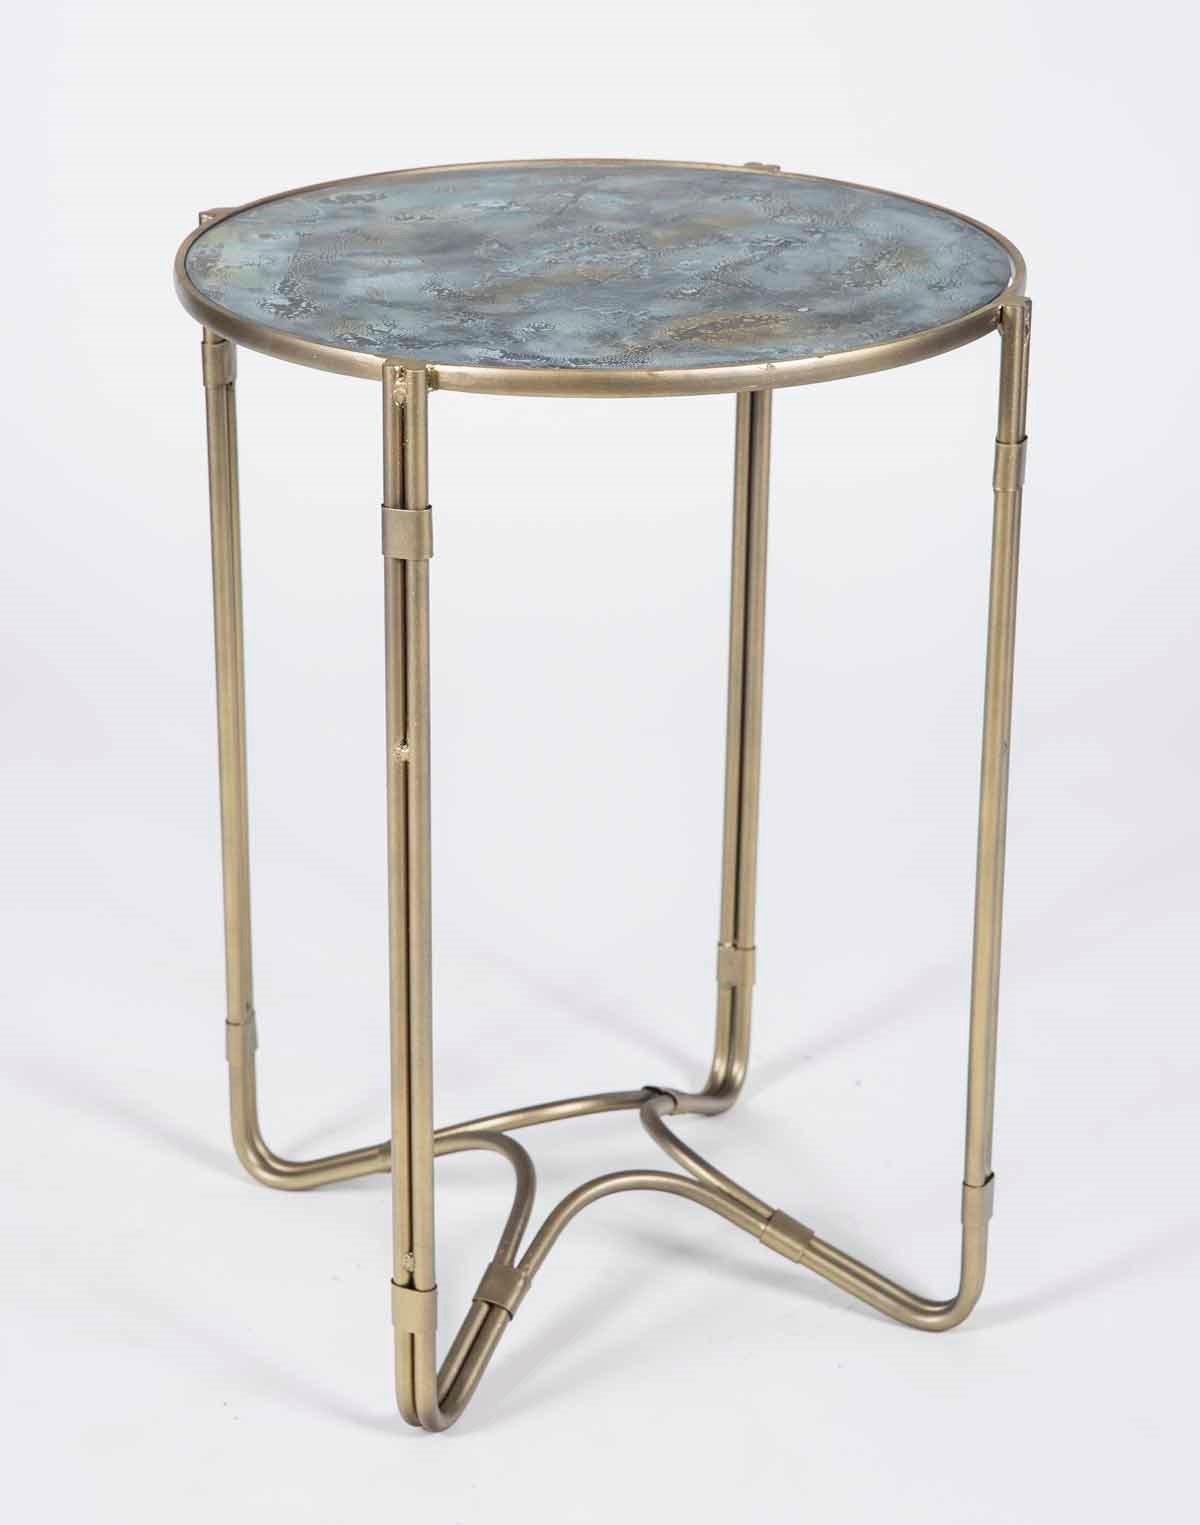 accent tables prima design source gold hammered table tall side with shelves entryway storage furniture bar height dining set cherry nightstand under west elm carpets formal